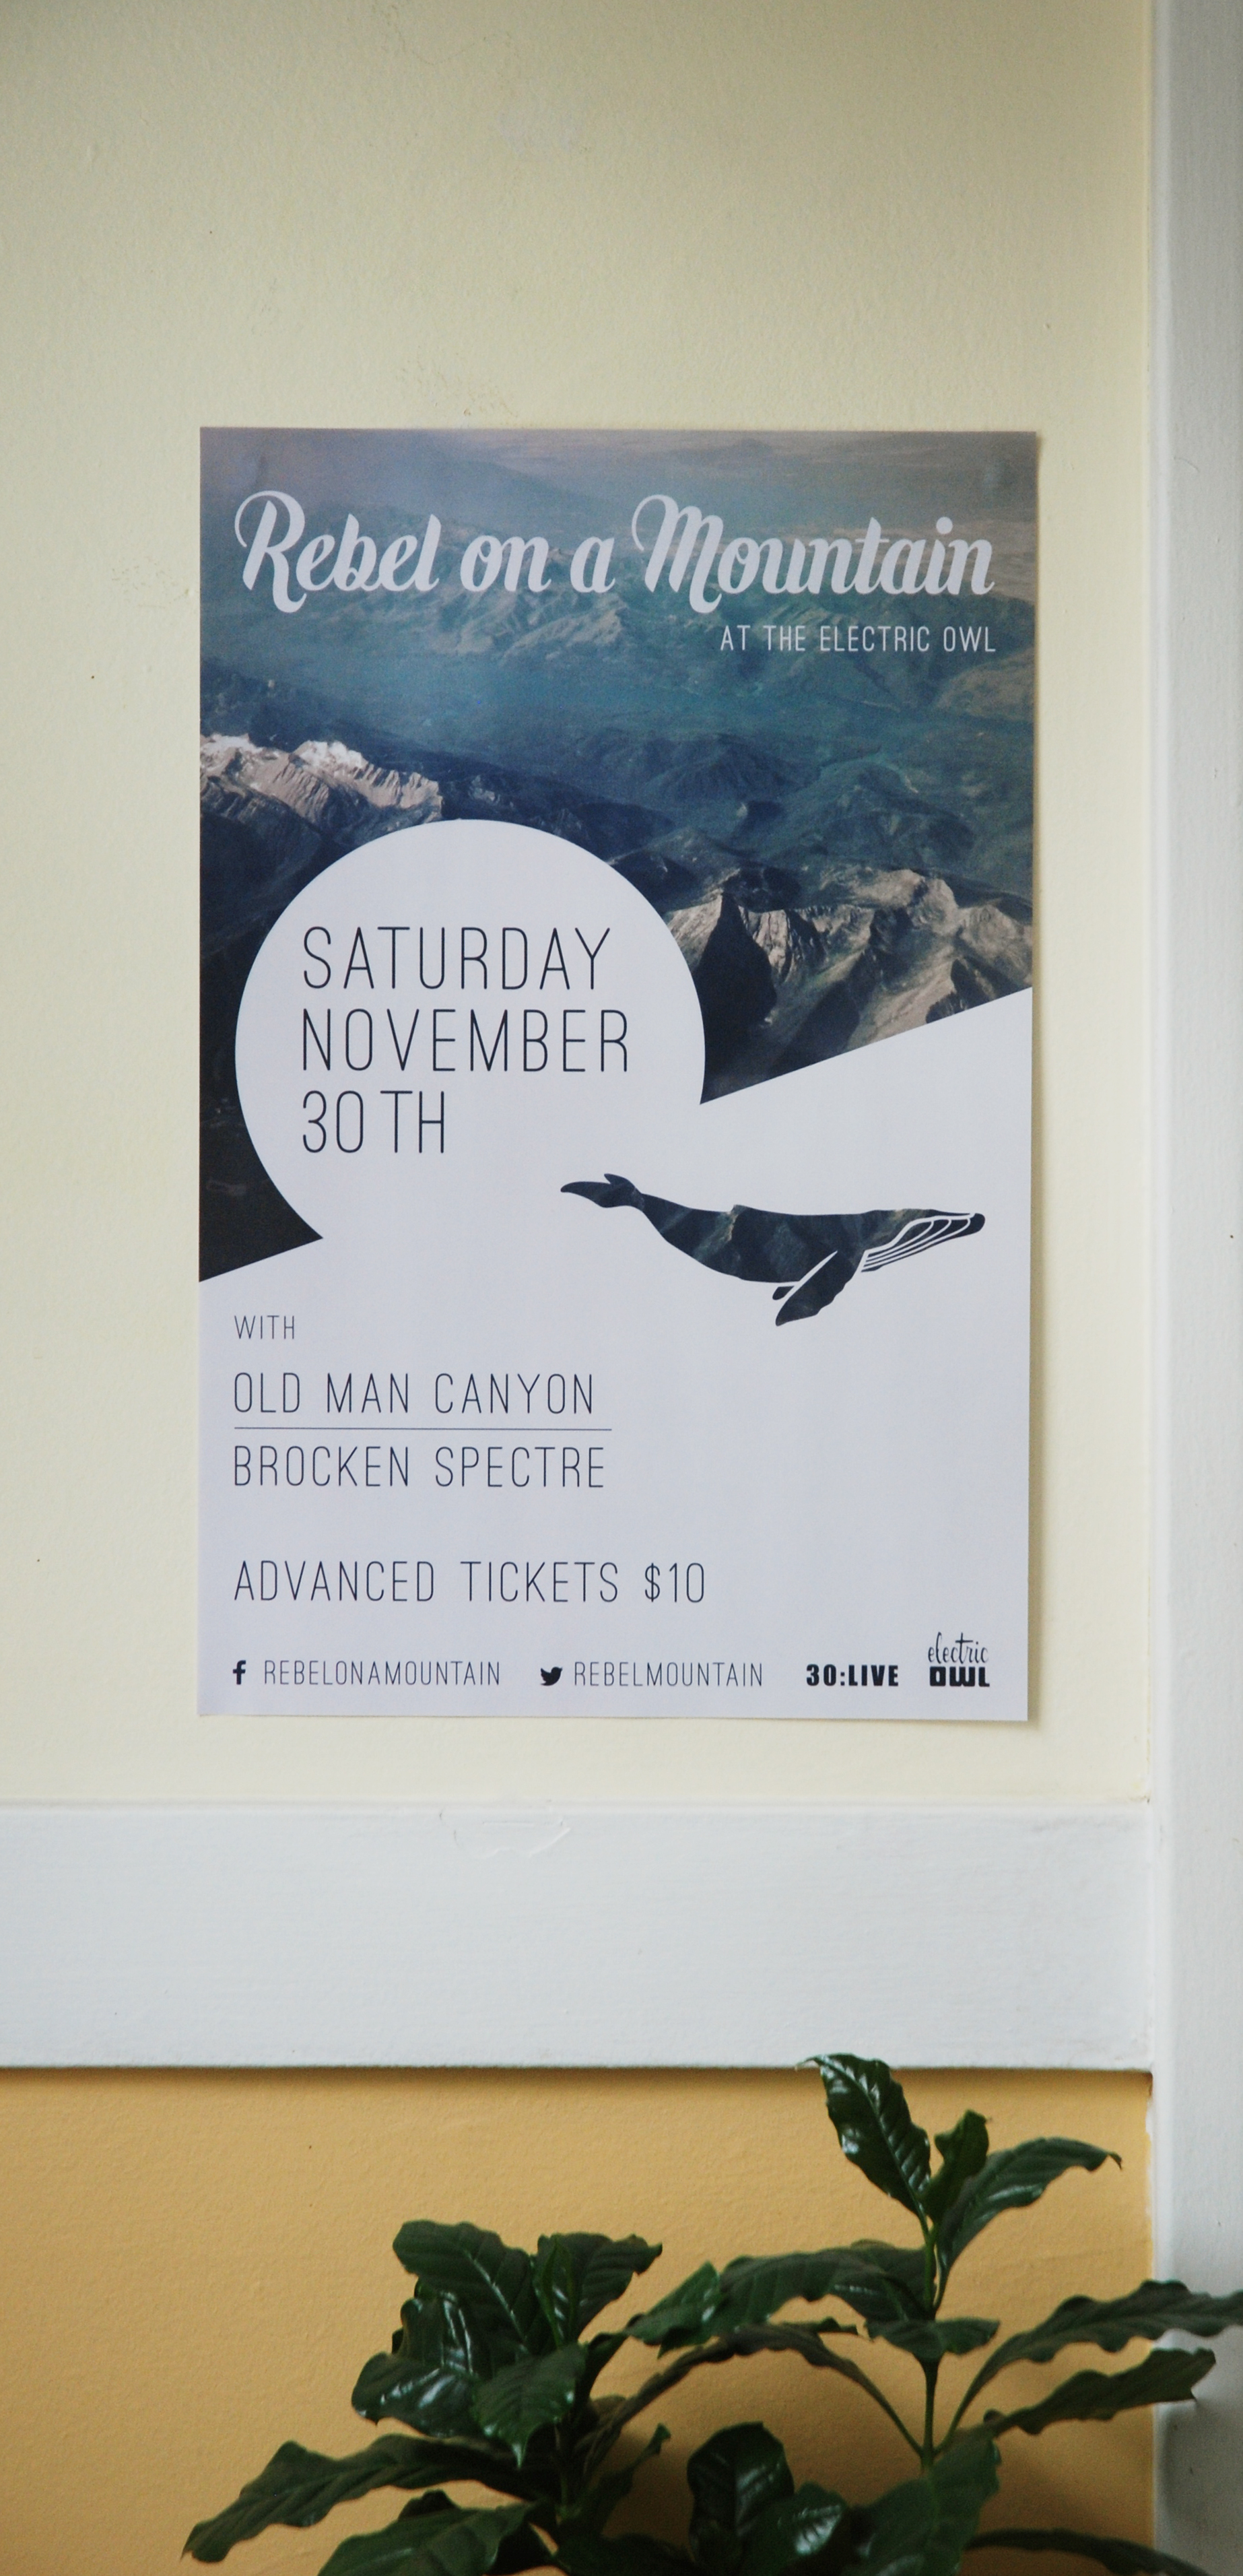 One of our gigs required us to provide the poster